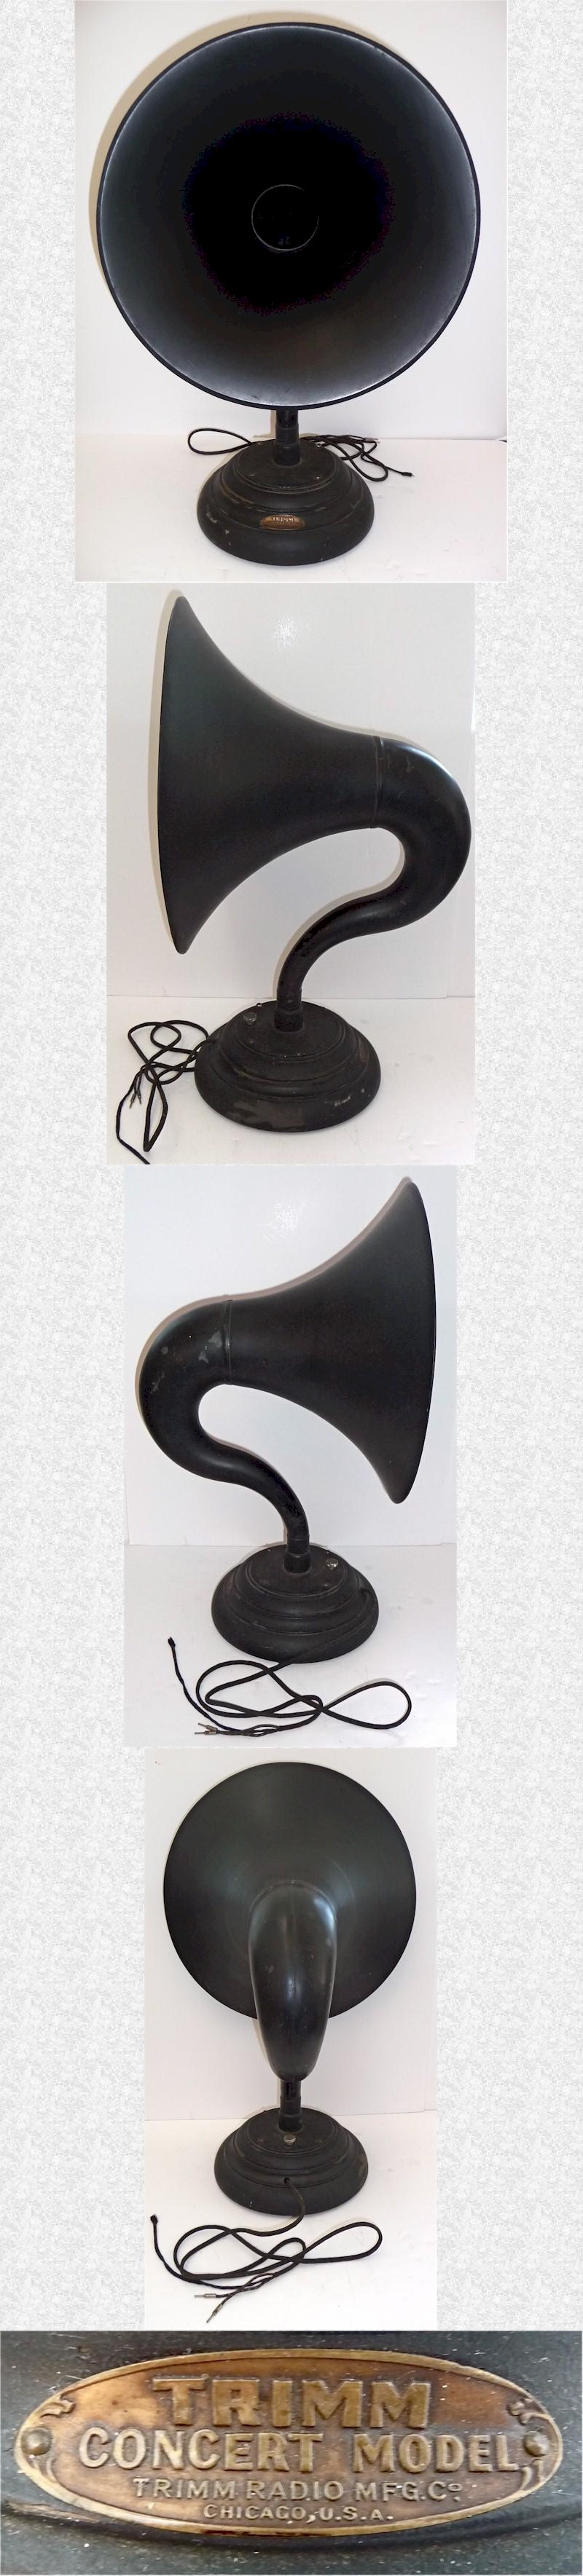 Trimm Concert Model Horn Speaker